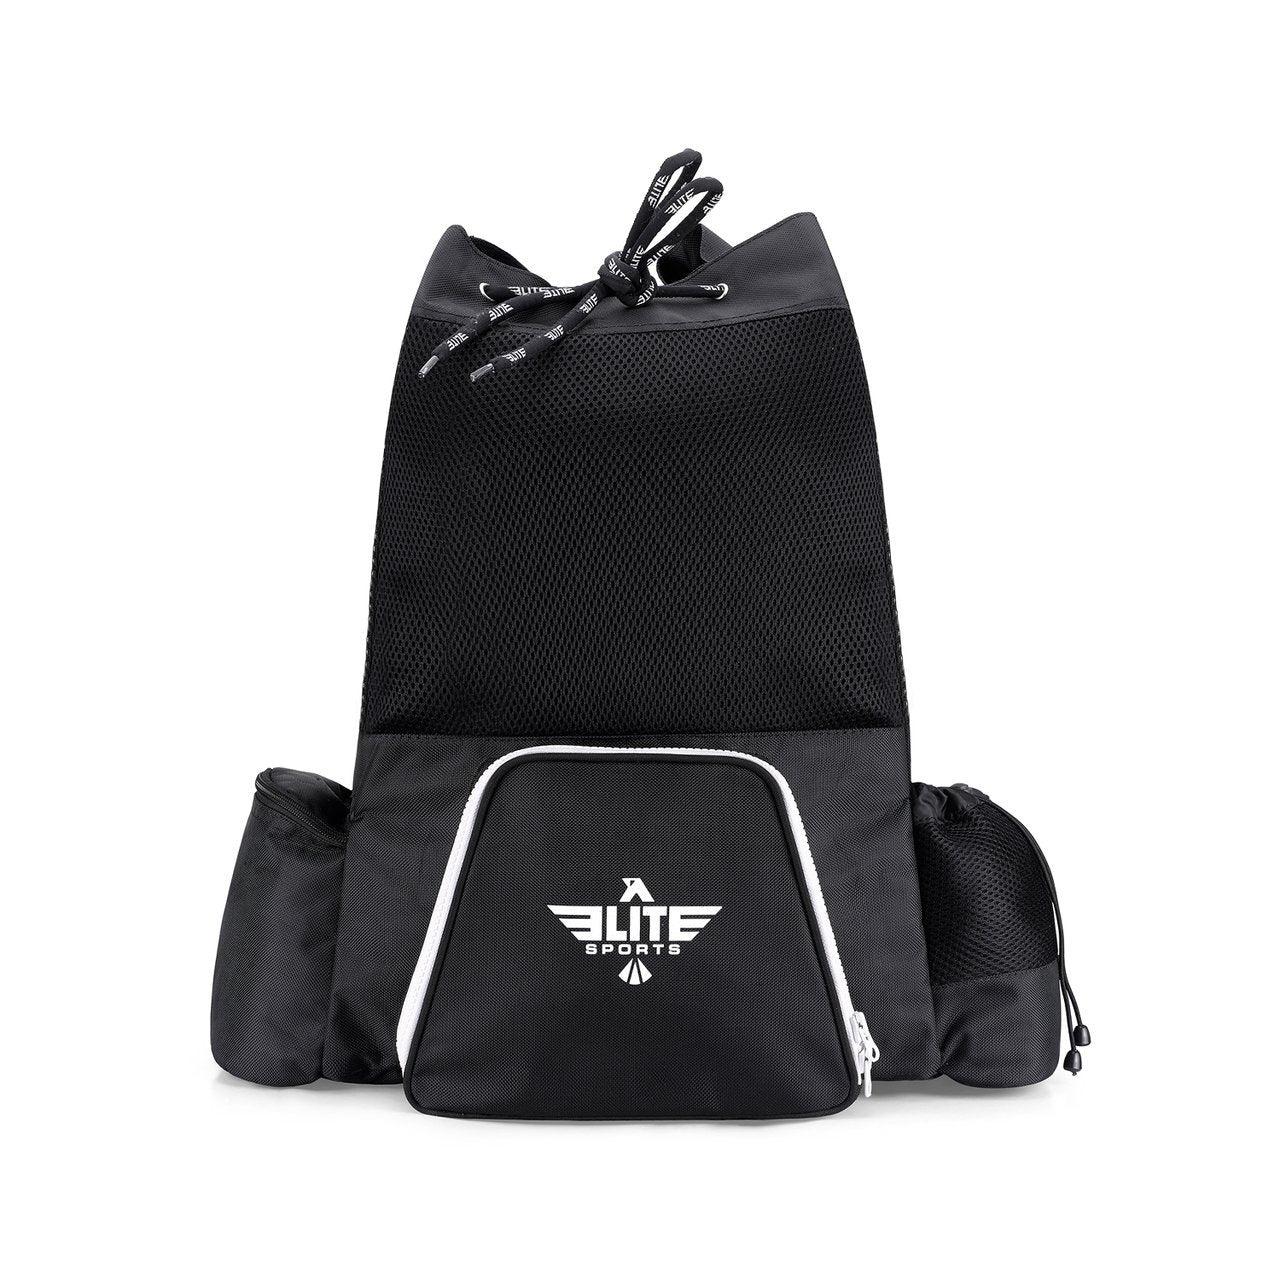 Load image into Gallery viewer, Elite Sports Mesh Black Medium Wrestling Gear Gym Bag & Backpack